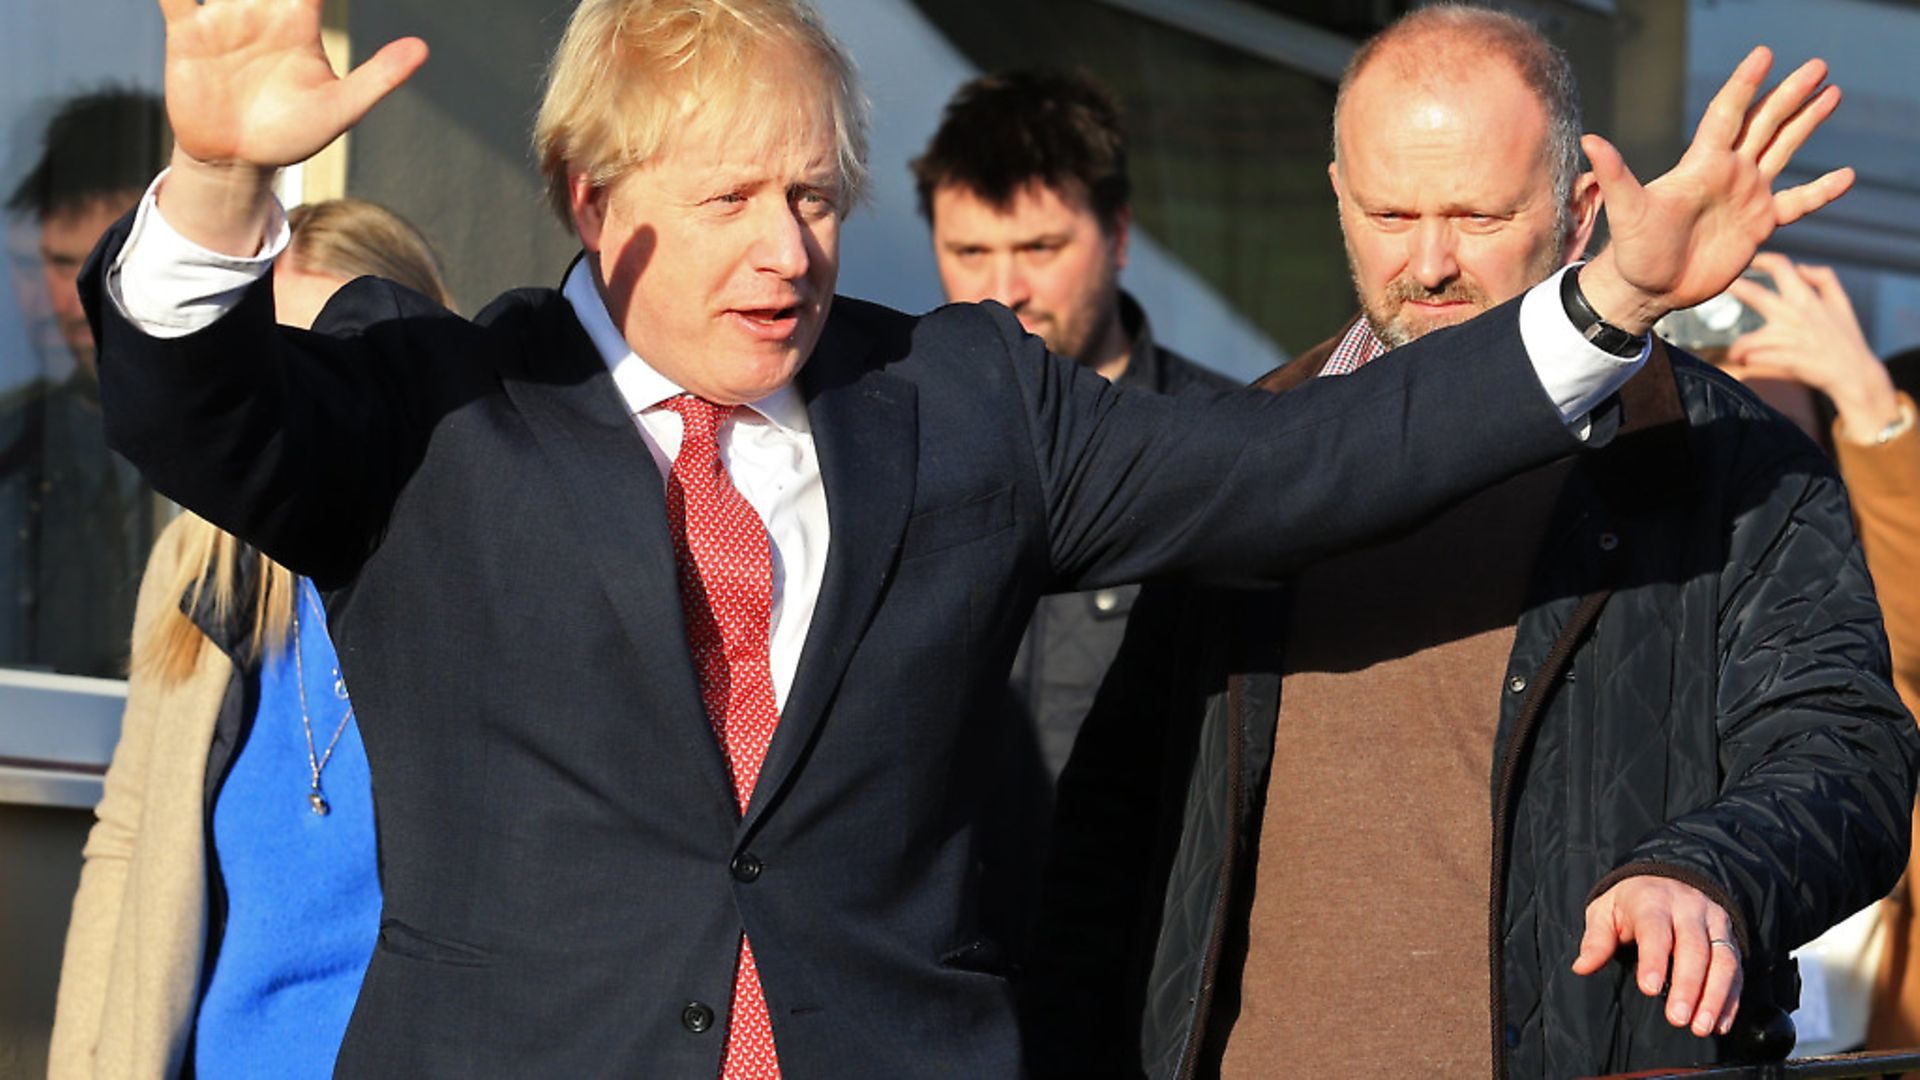 Boris Johnson after his election win in December 2019. Photograph: Lindsey Parnaby/PA. - Credit: PA Wire/PA Images